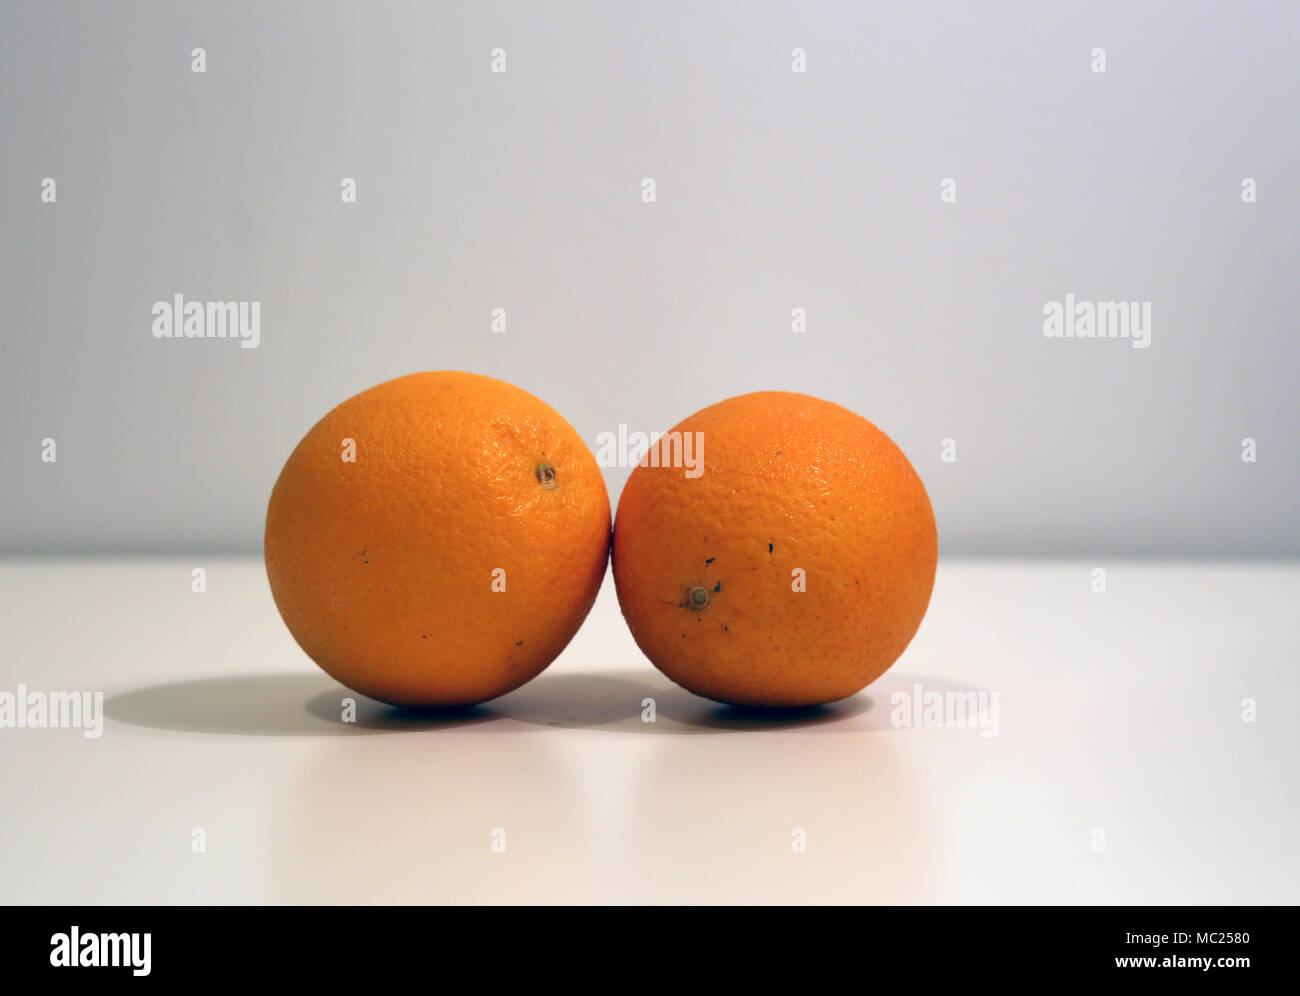 Two oranges on a table leaning on each other. Simple and beautiful fruit still live with white / gray background. - Stock Image